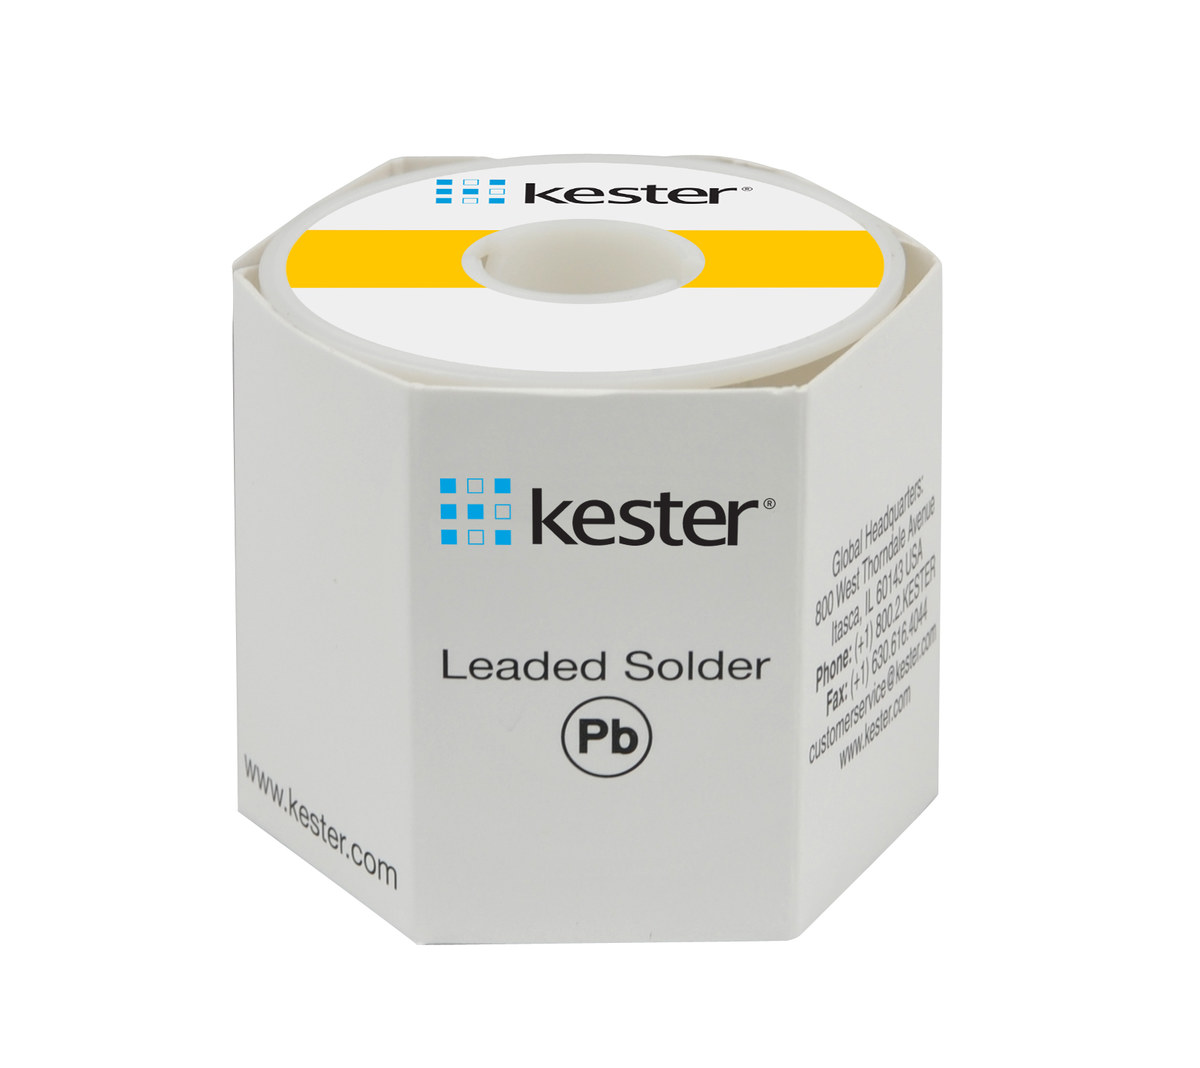 Kester 285 Lead Solder Wire Sn Pb Ag 0015 In Circuit Board Fused Glass Pendant Woven Silver Wrap Wrapping 1 Lb Diameter Compound 36 Content 24 7150 9727